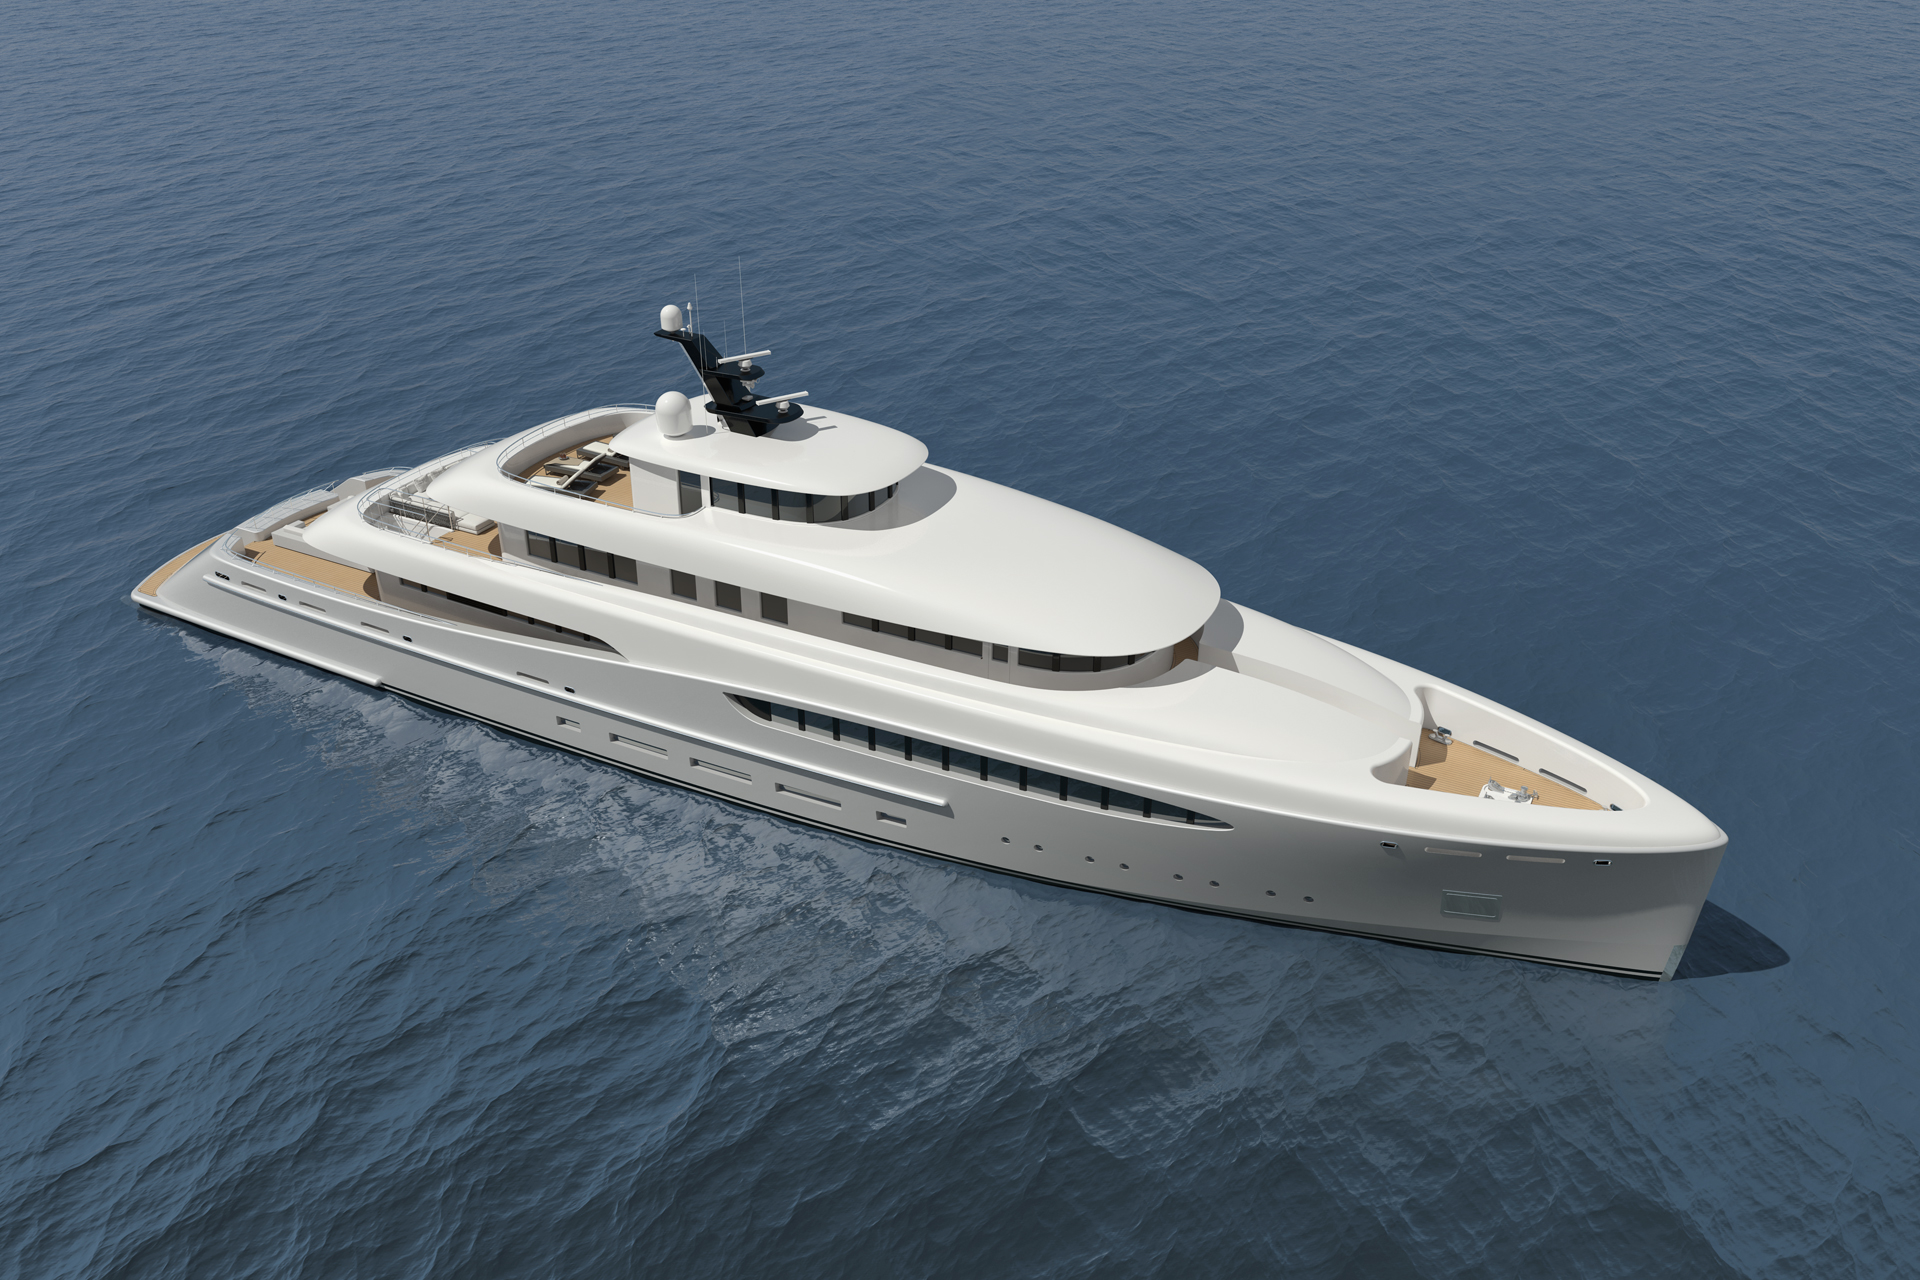 luxury yacht project overture by nick mezas yacht design luxury